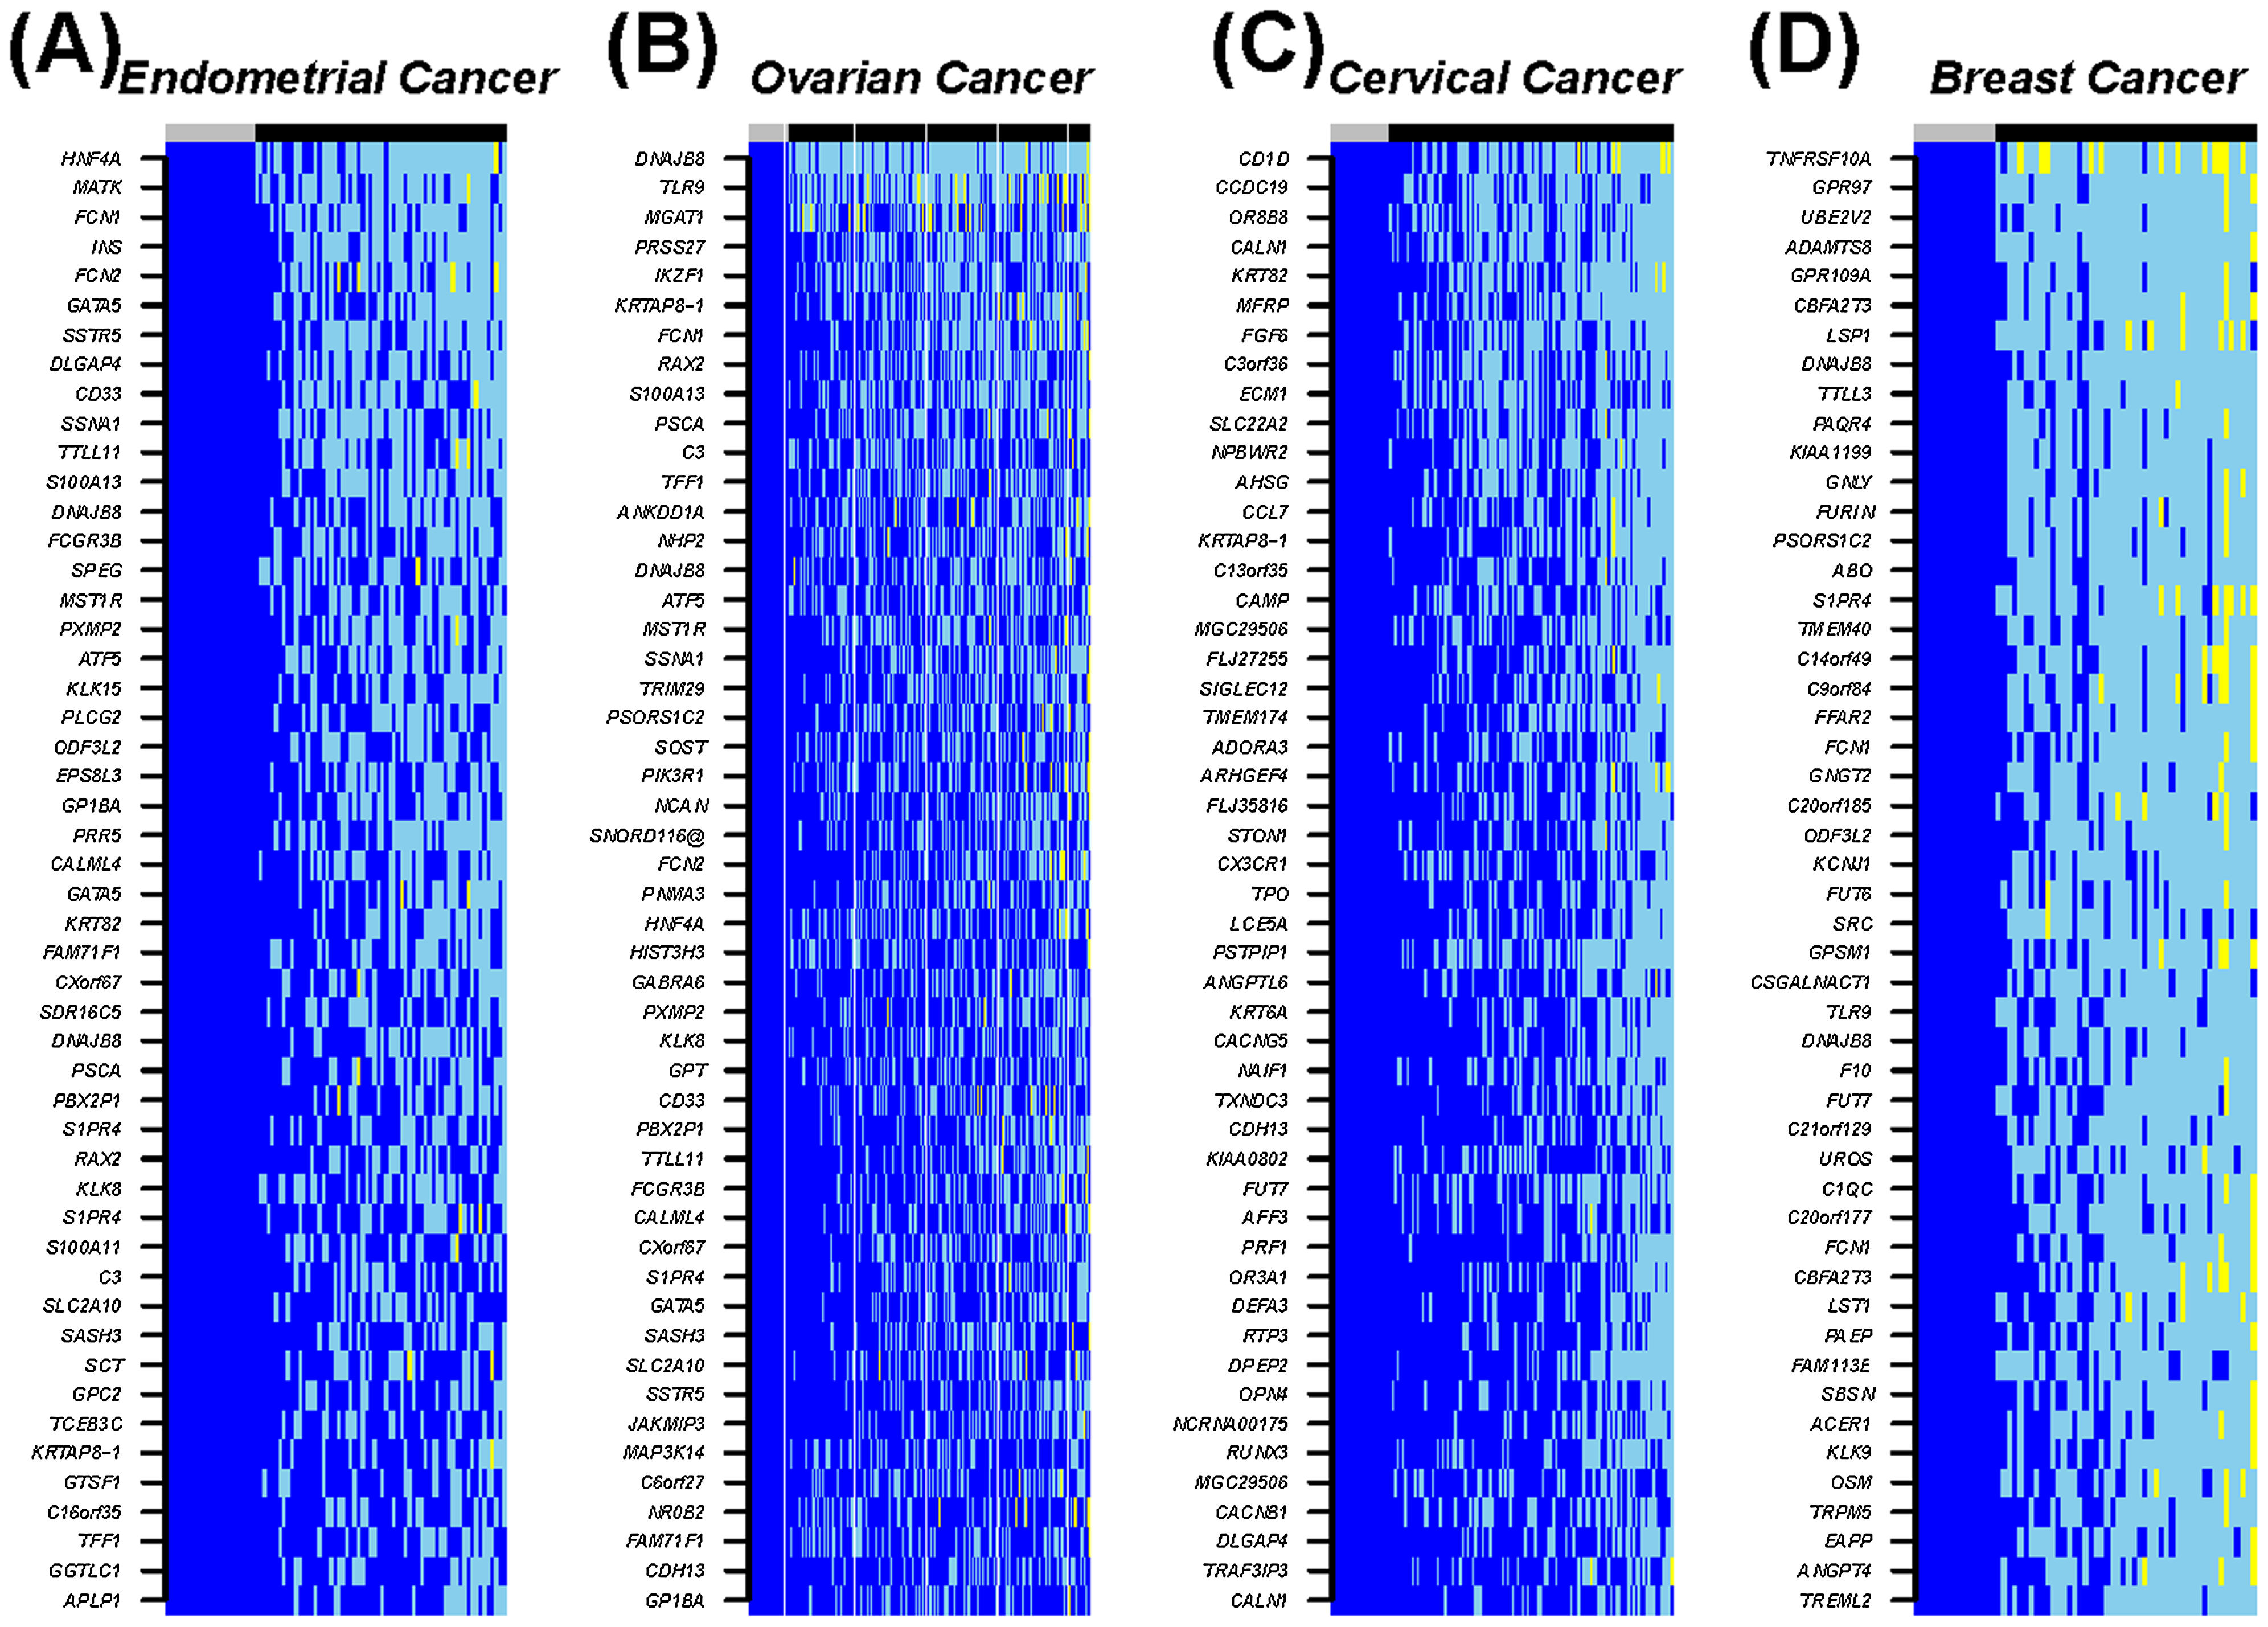 Heatmap of the top 50 most frequently hypomethylated MESCs in cancers.